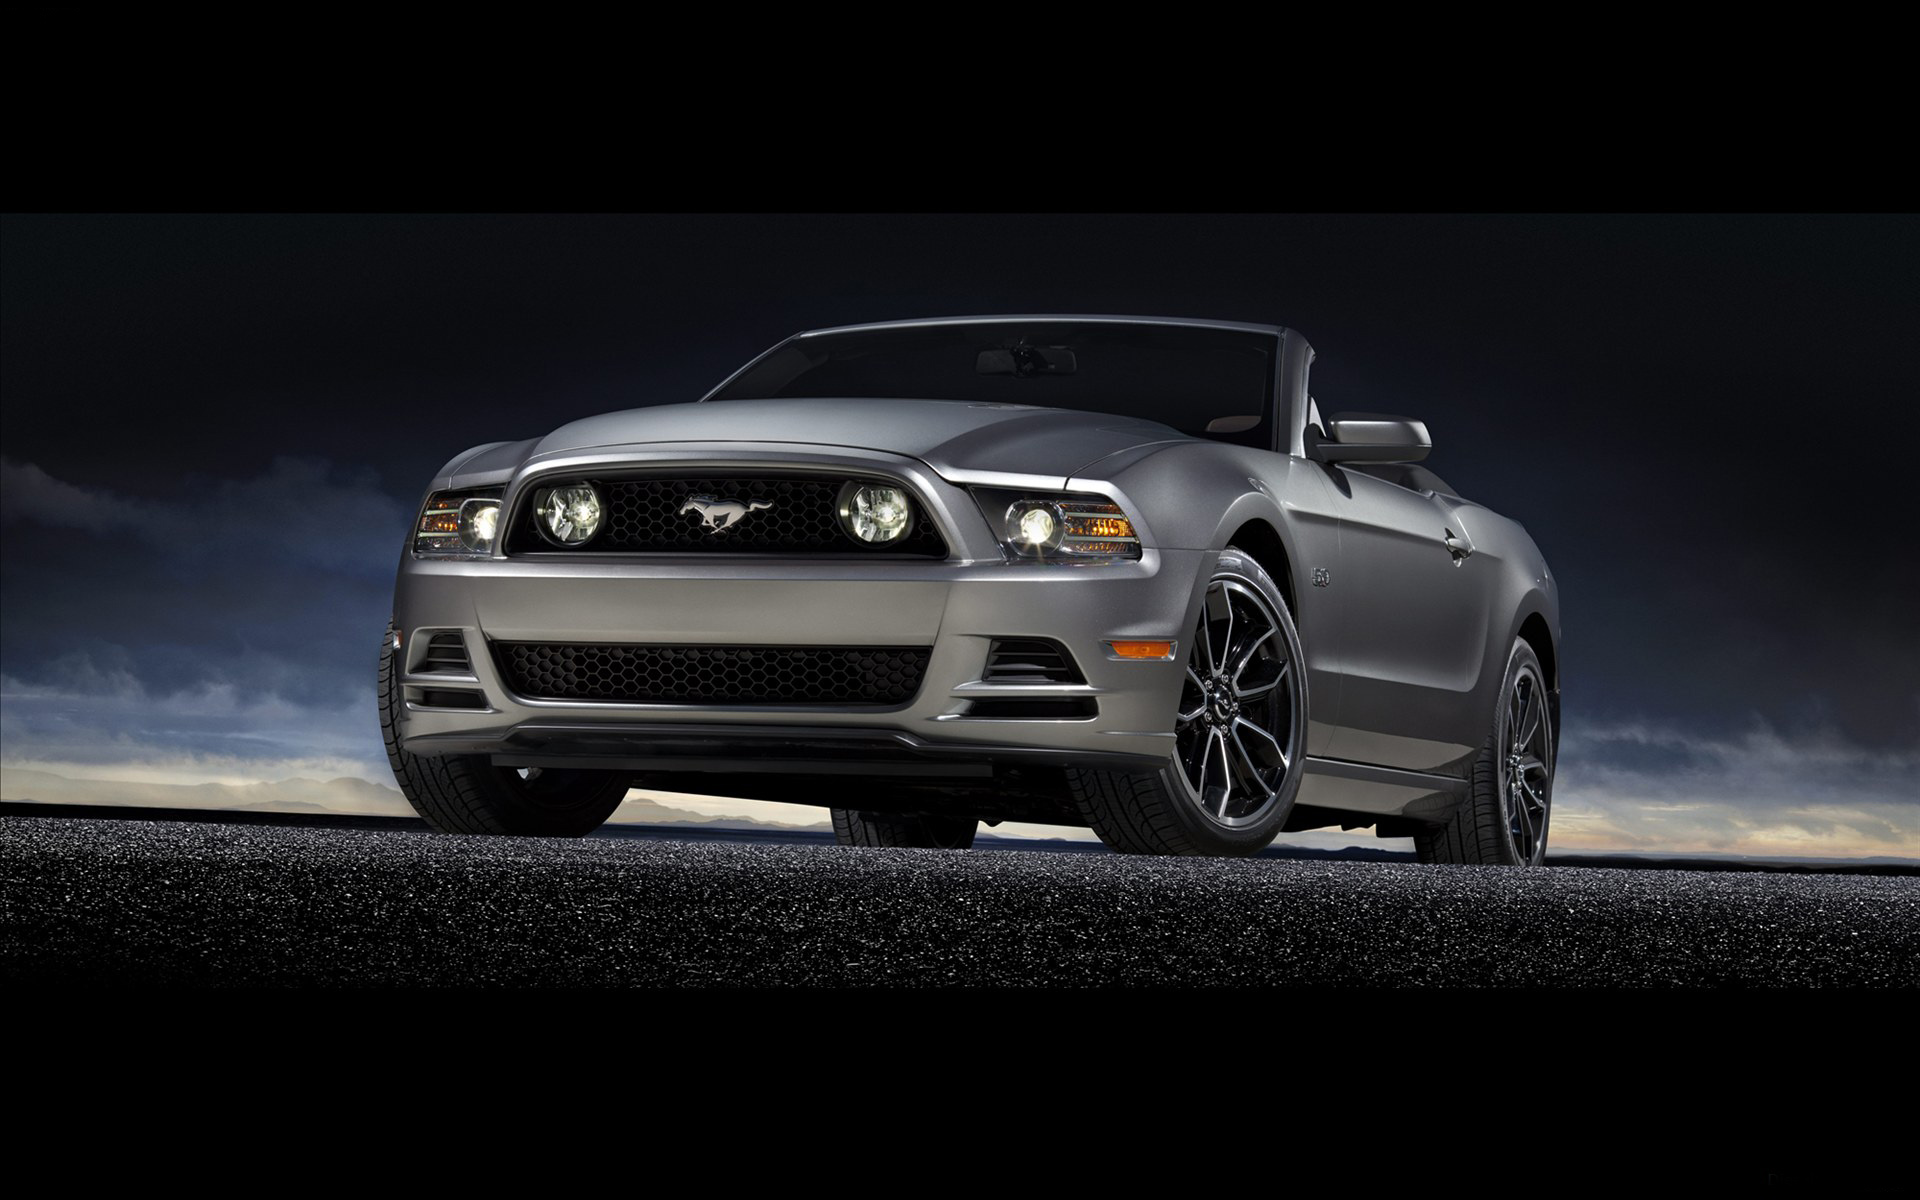 Mustang Car Full Hd Wallpapers Amazing Wallpaperz 1920x1200